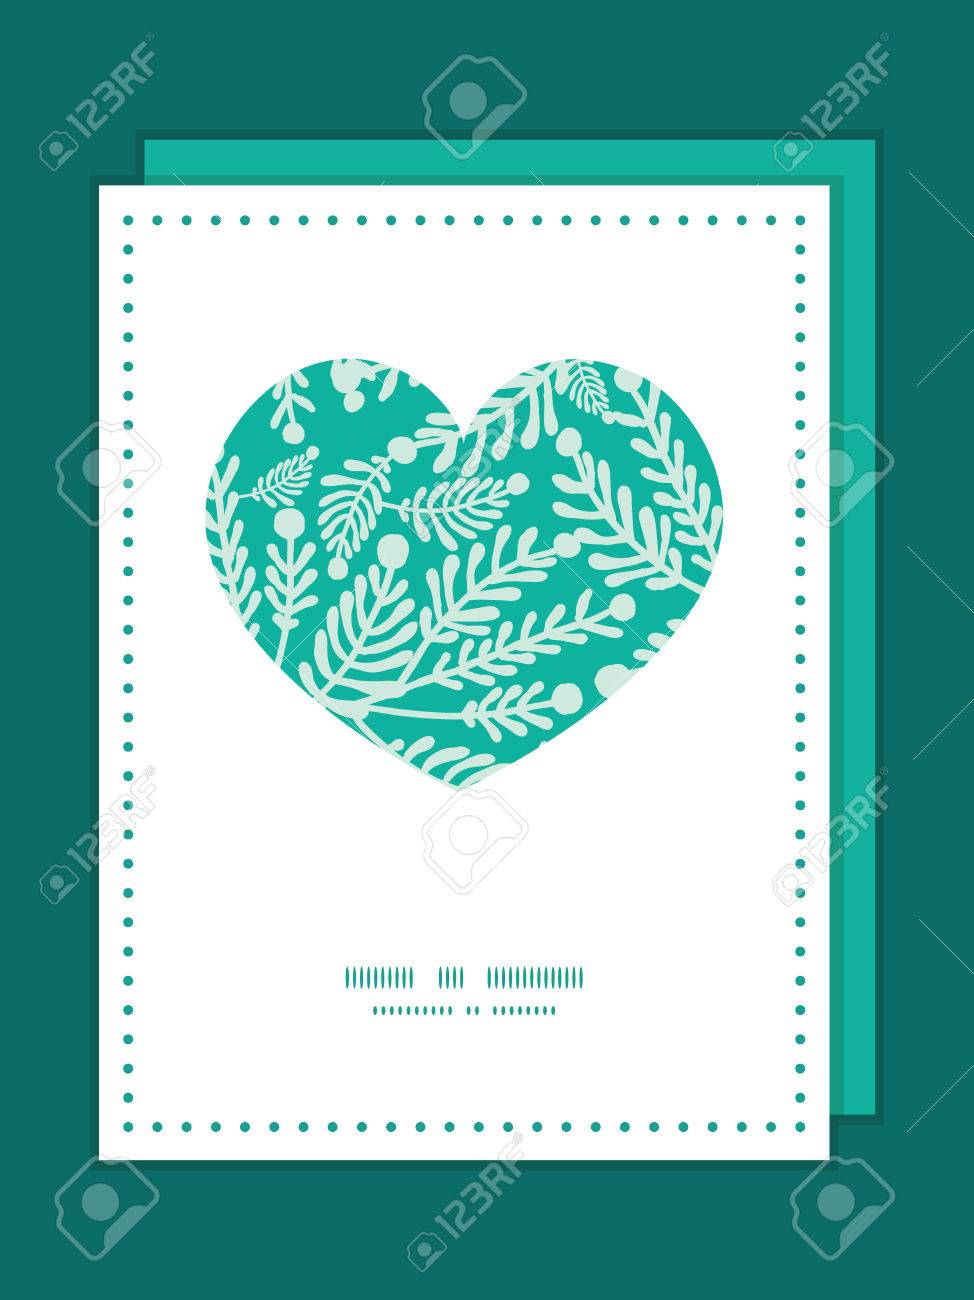 Vector emerald green plants heart symbol frame pattern invitation banco de imagens vector emerald green plants heart symbol frame pattern invitation greeting card template stopboris Image collections